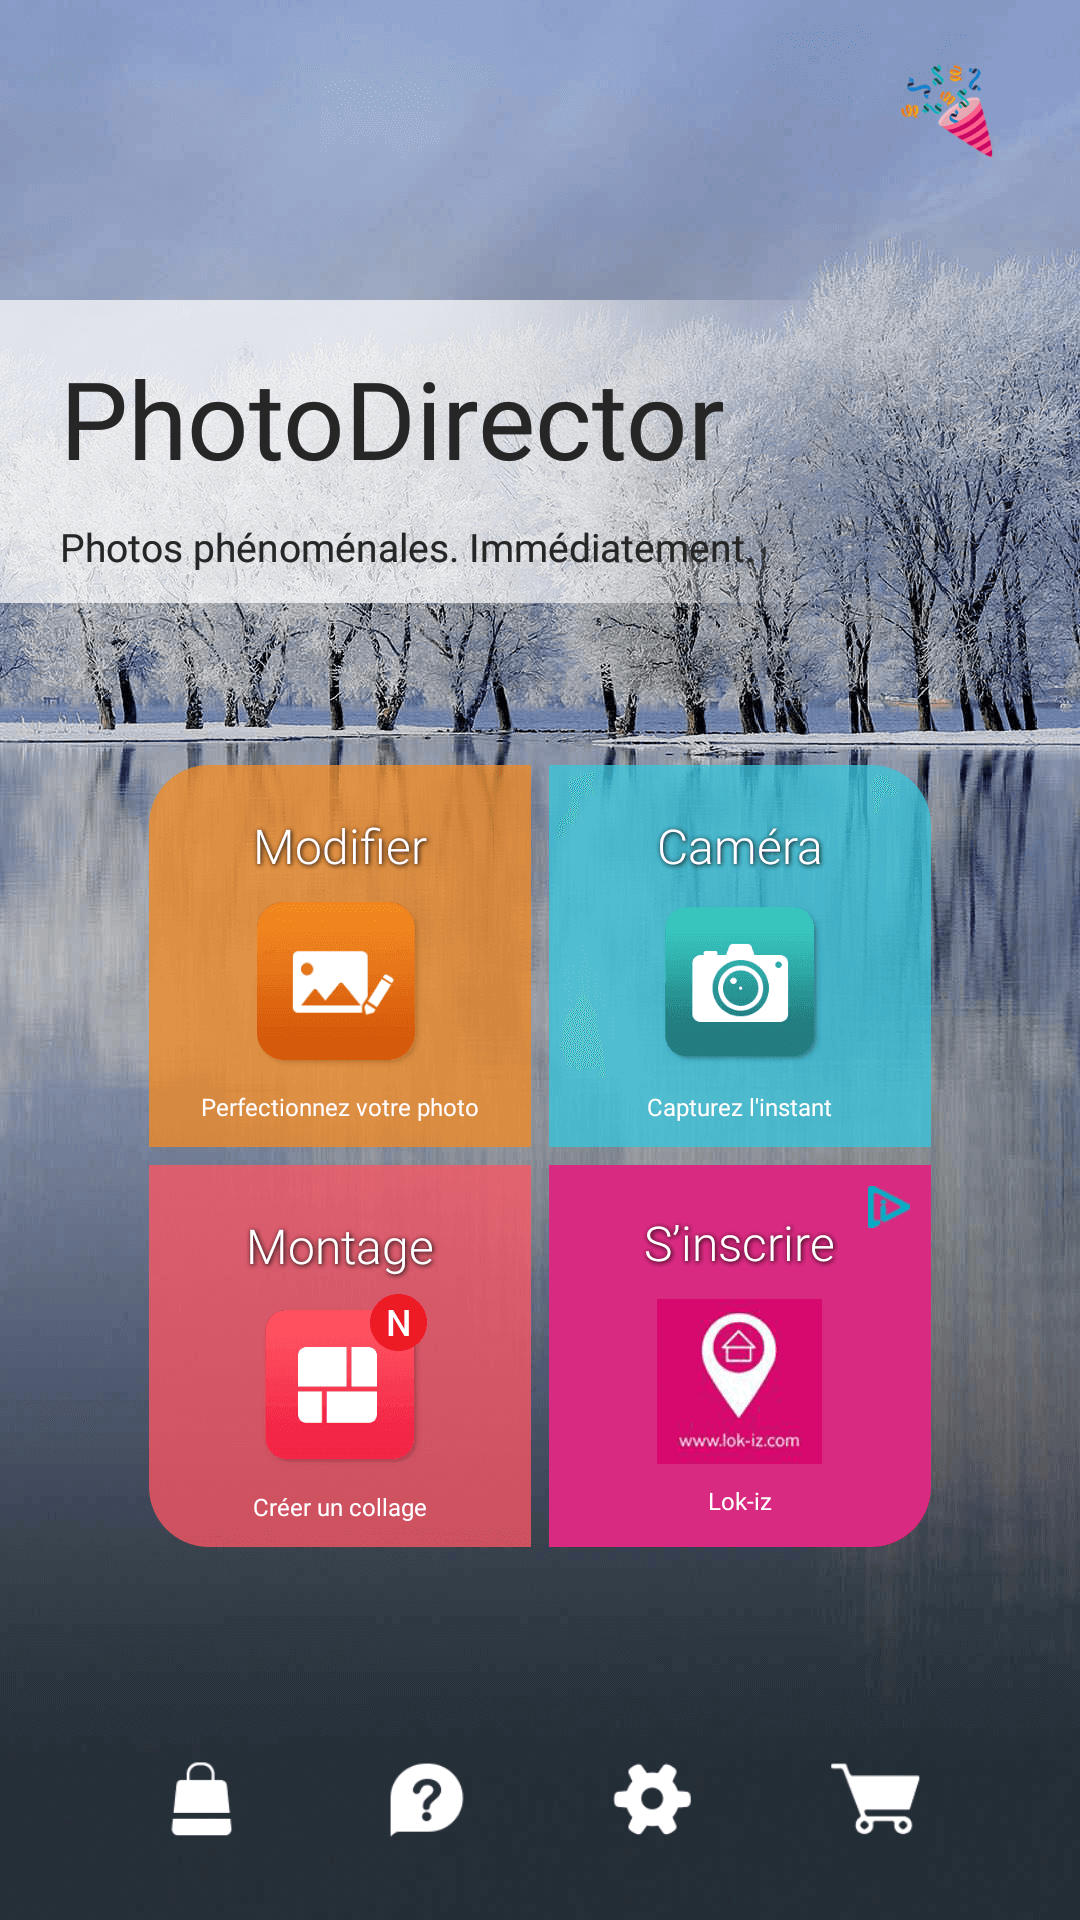 applis d'édition de photos photo director 1